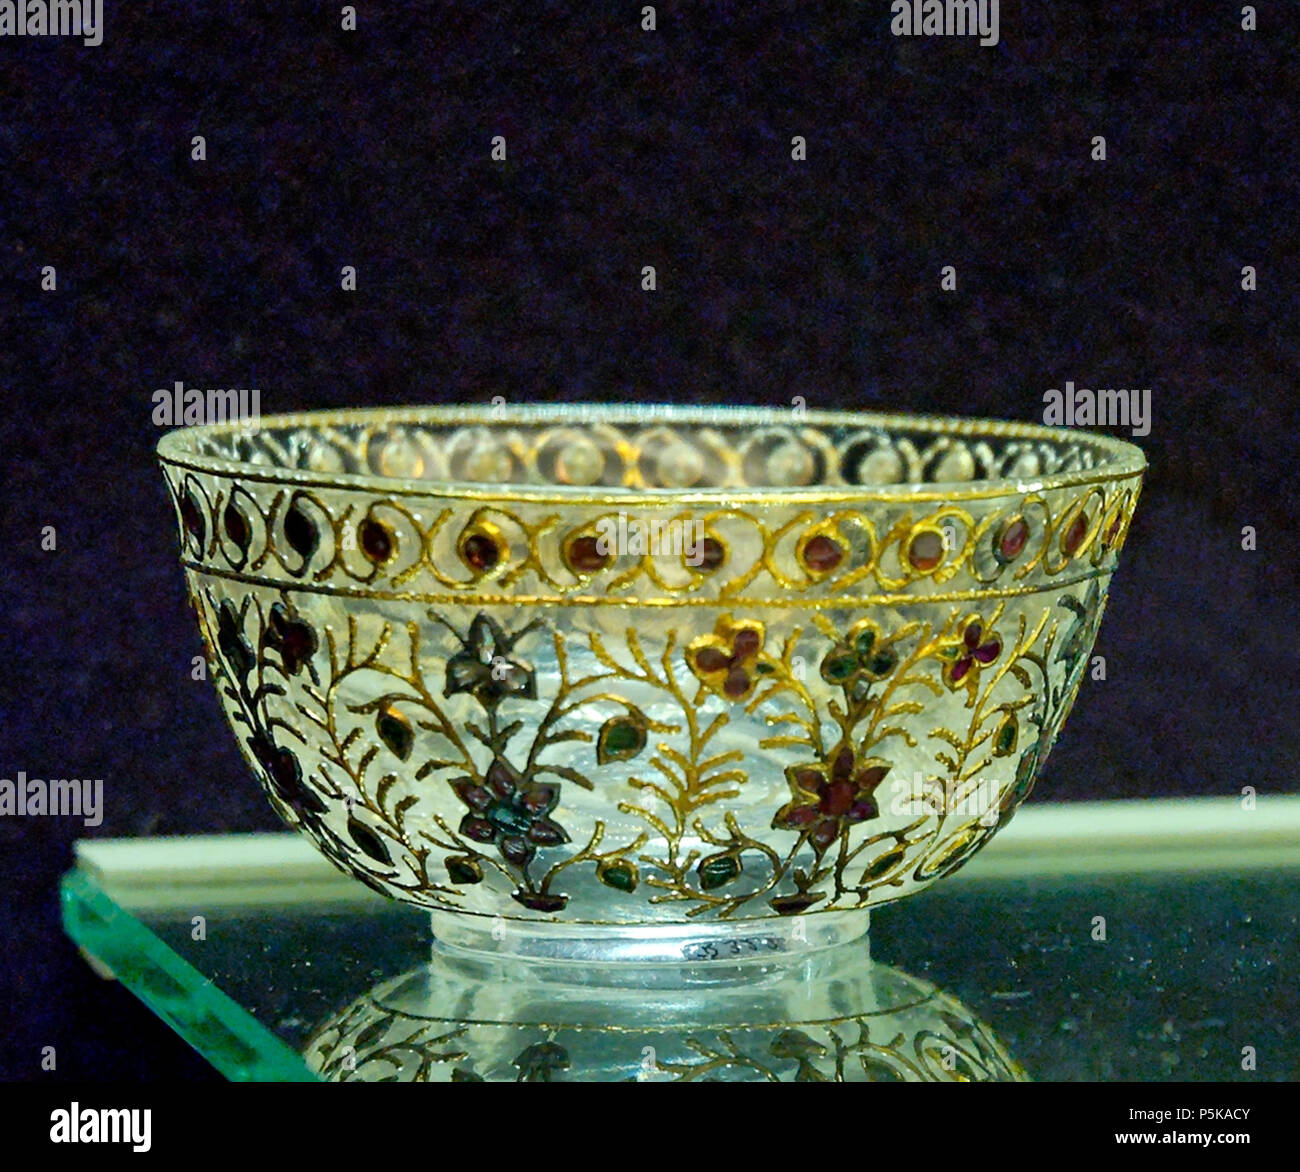 N/A.  English: Wine cup, Mughal art from India. Français : Coupe à vin, art moghol d'Inde. . 18th century. N/A 395 Cup India Louvre R322 Stock Photo